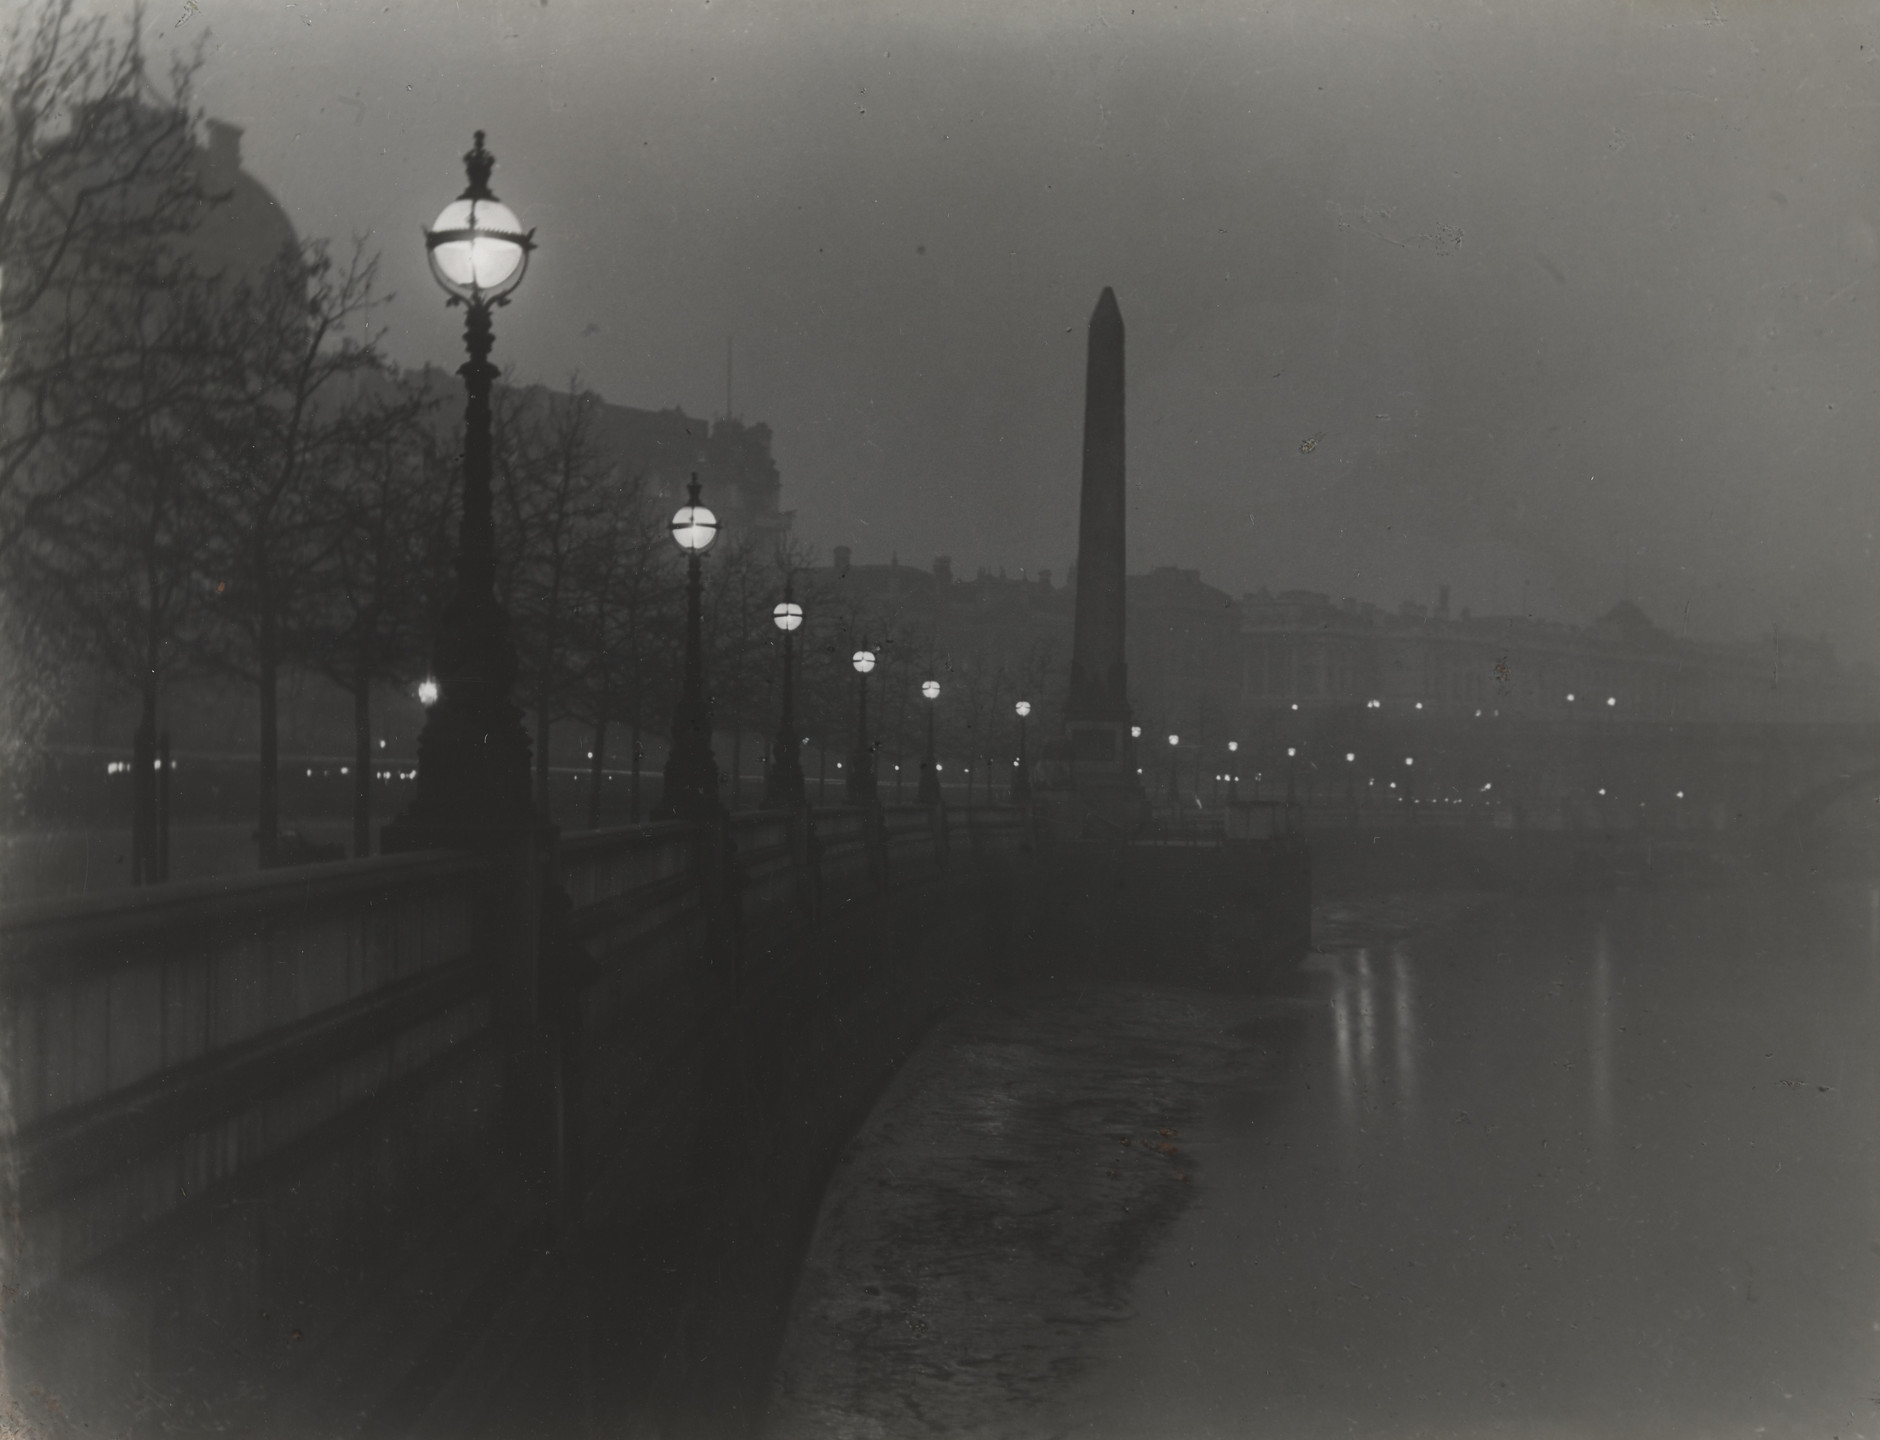 Paul Martin. Cleopatra's Needle and the Thames Embankment by Gas-Light. c. 1890-1896